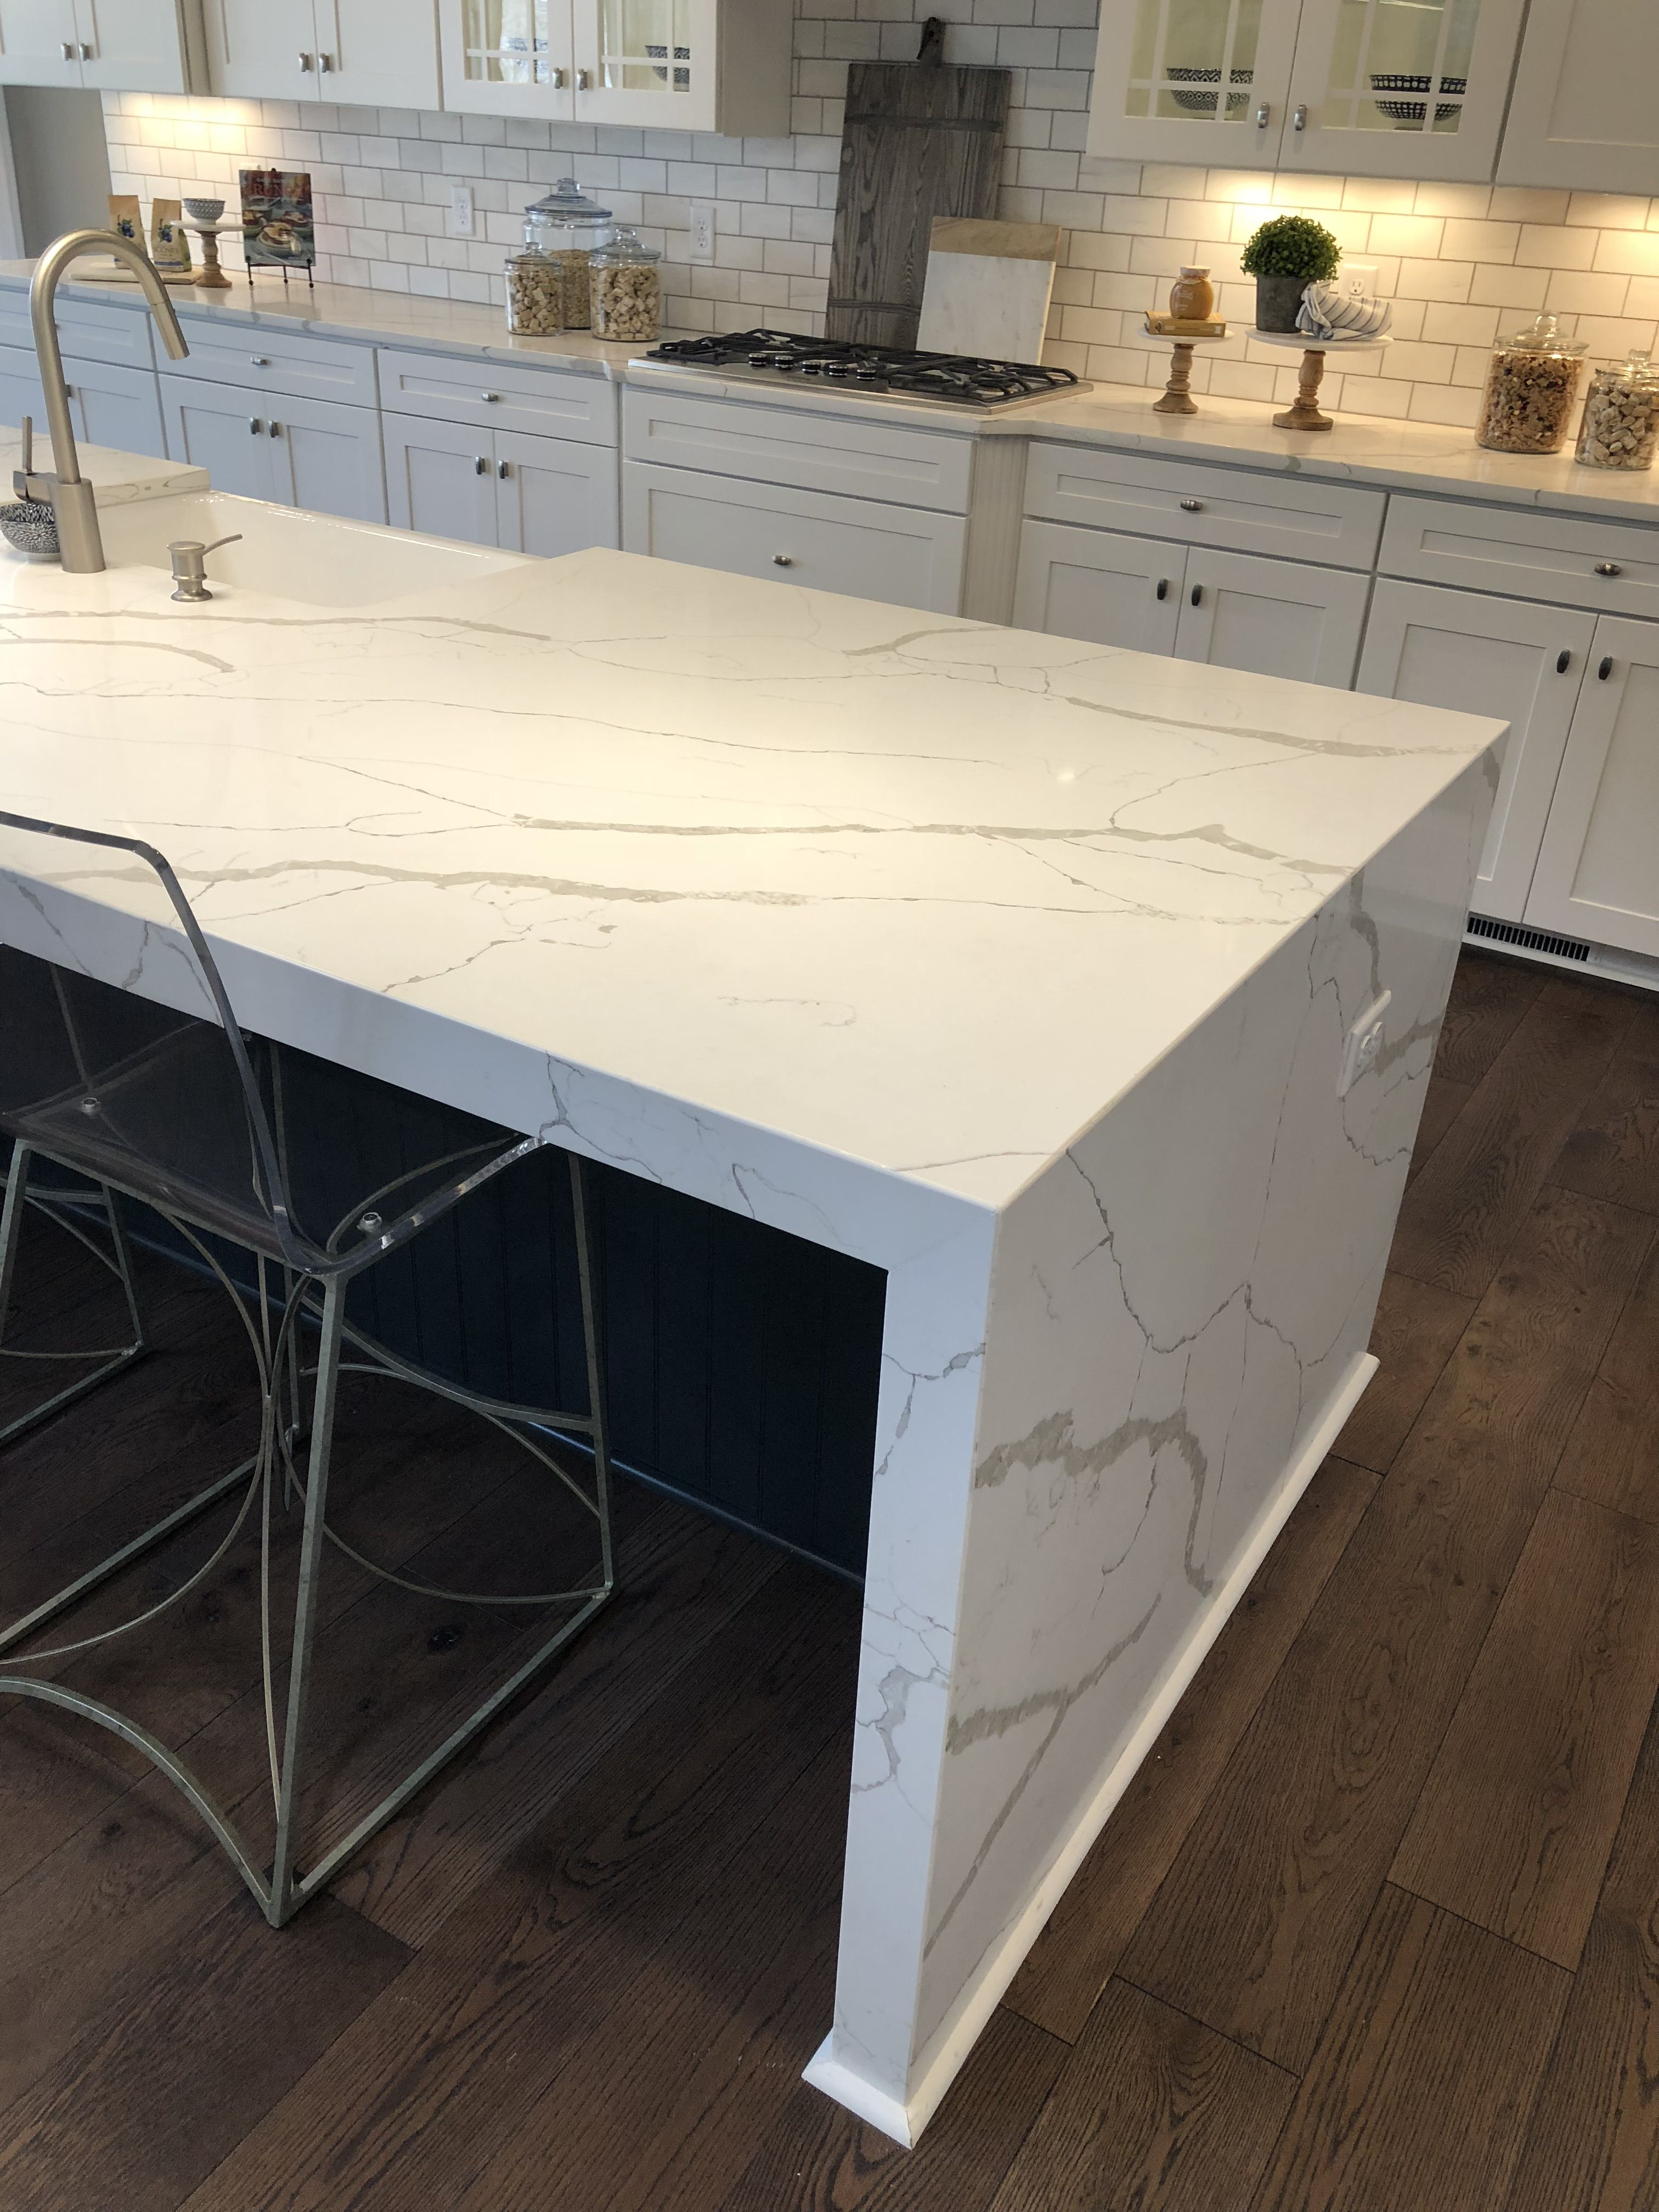 Calacatta Laza Quartz Kitchen Remodel Countertops Kitchen